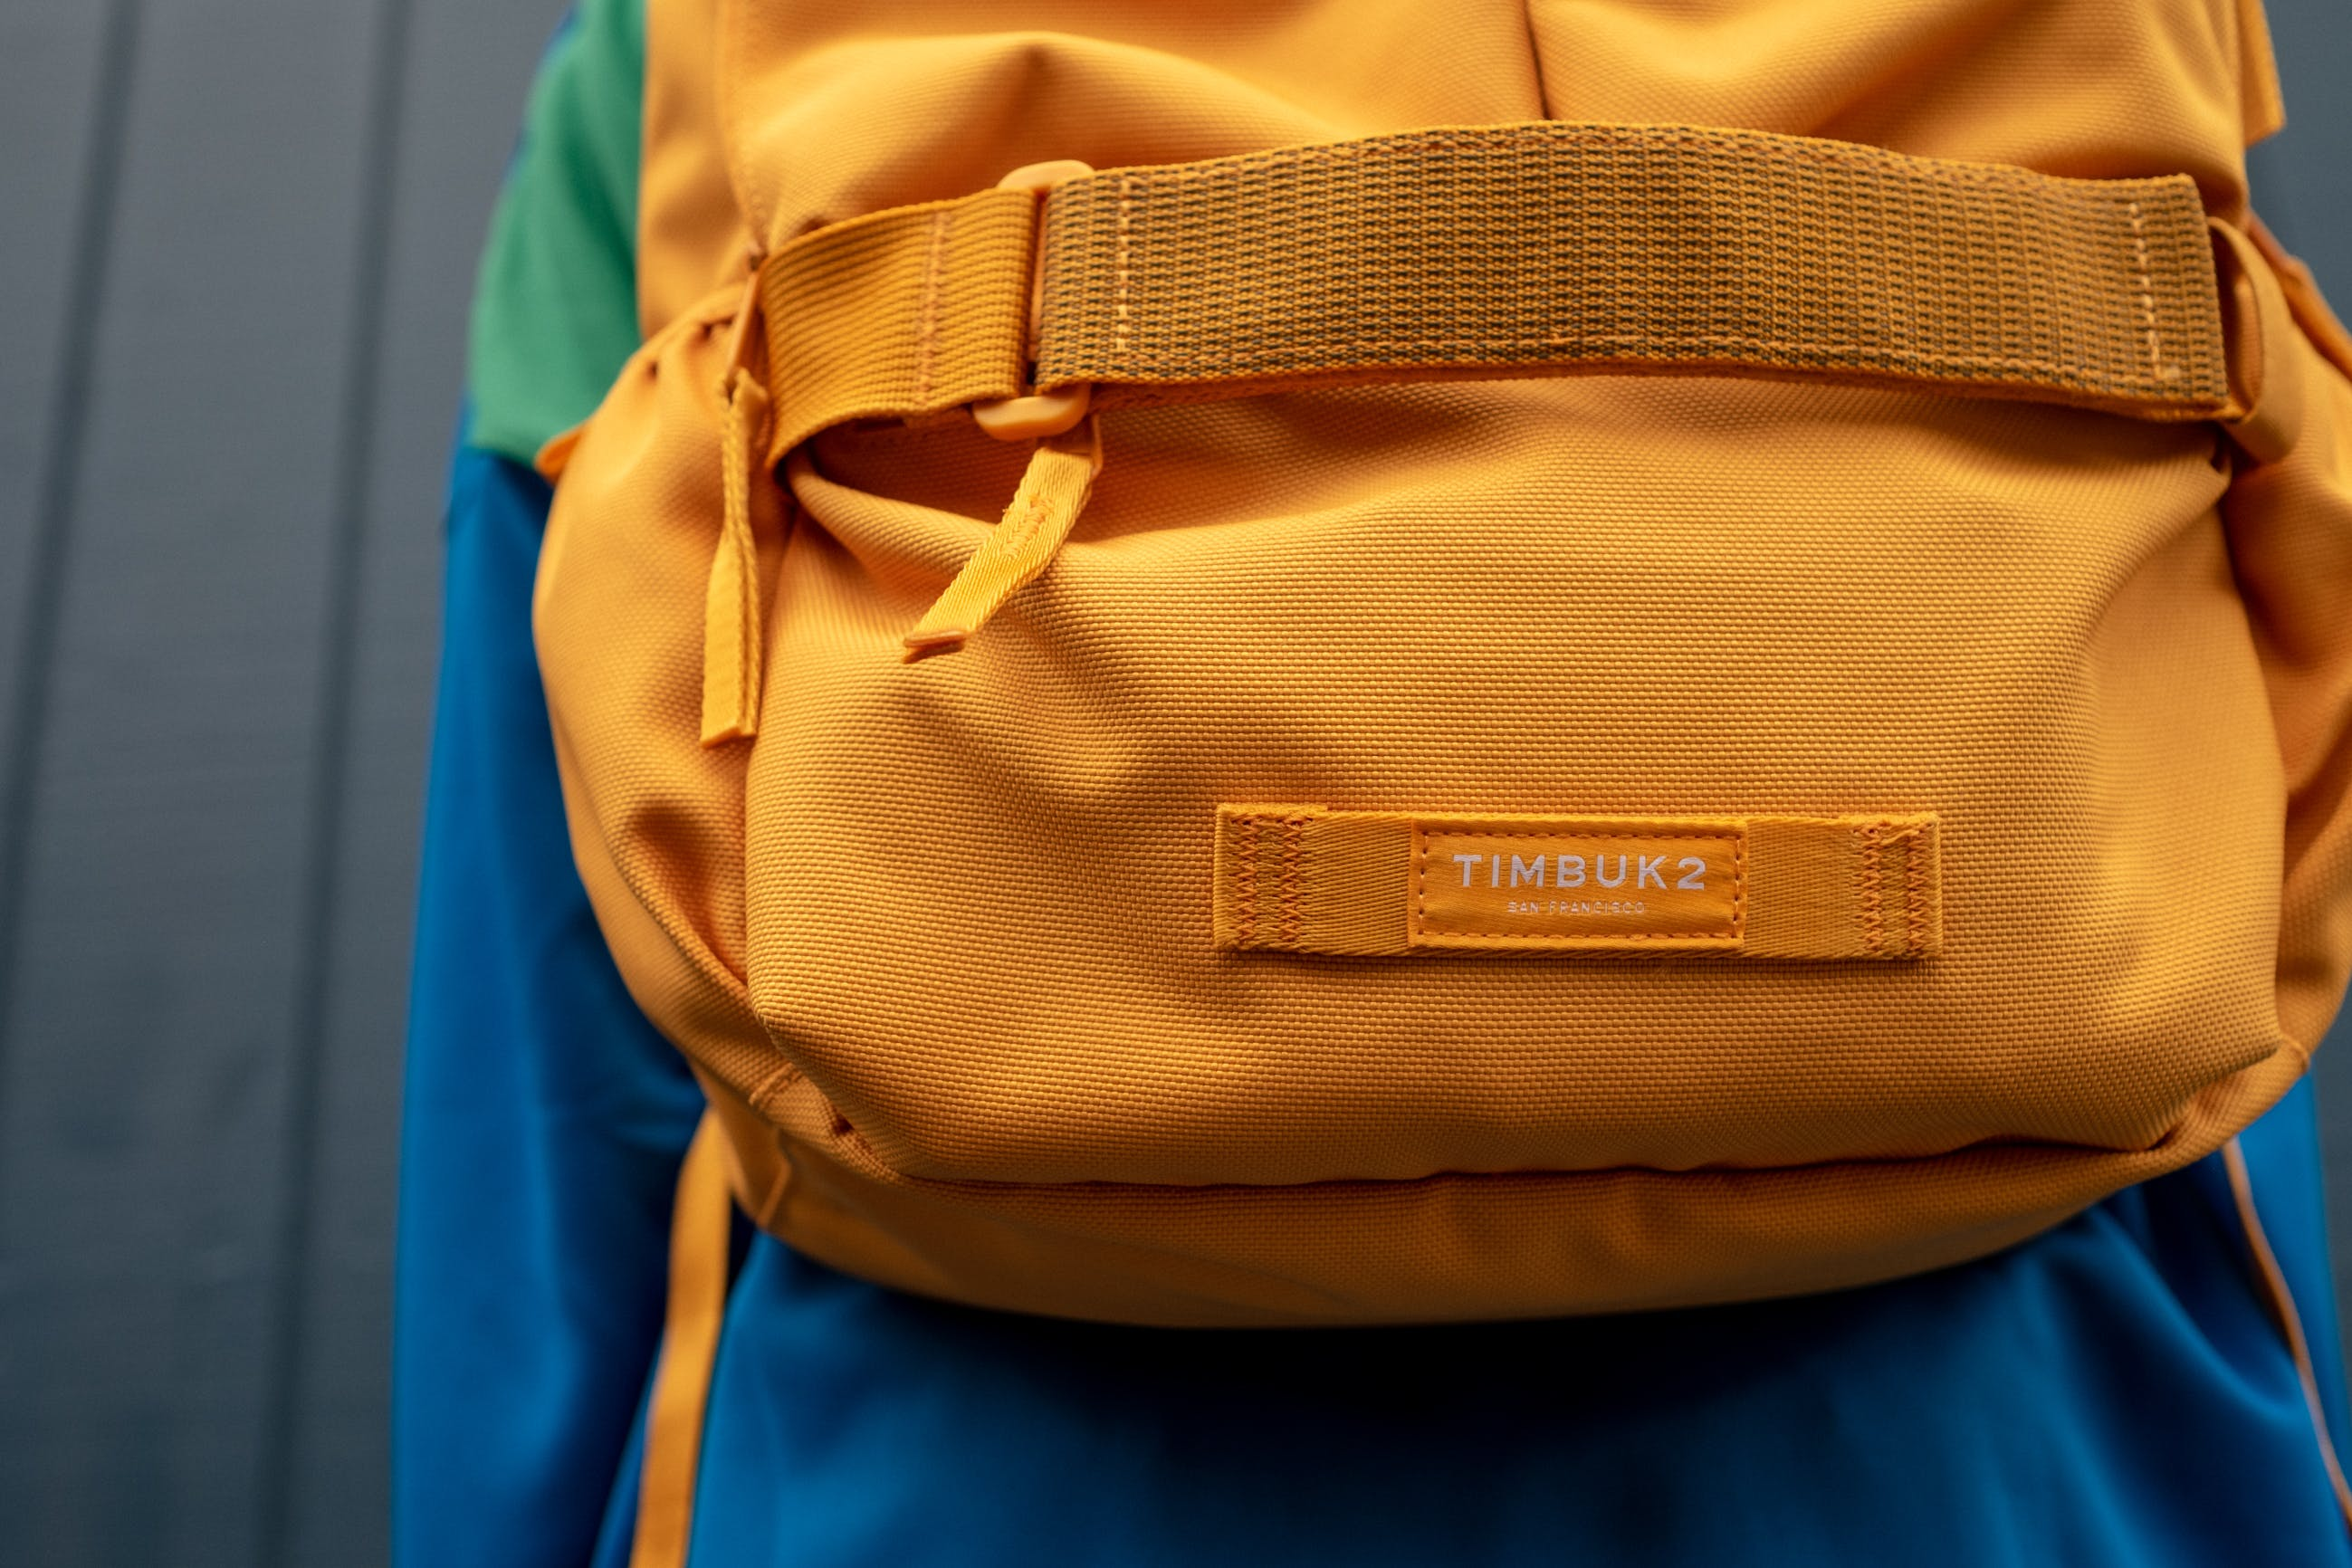 Close-up Photo of Orange Timbuk2 Backpack on Persons Back